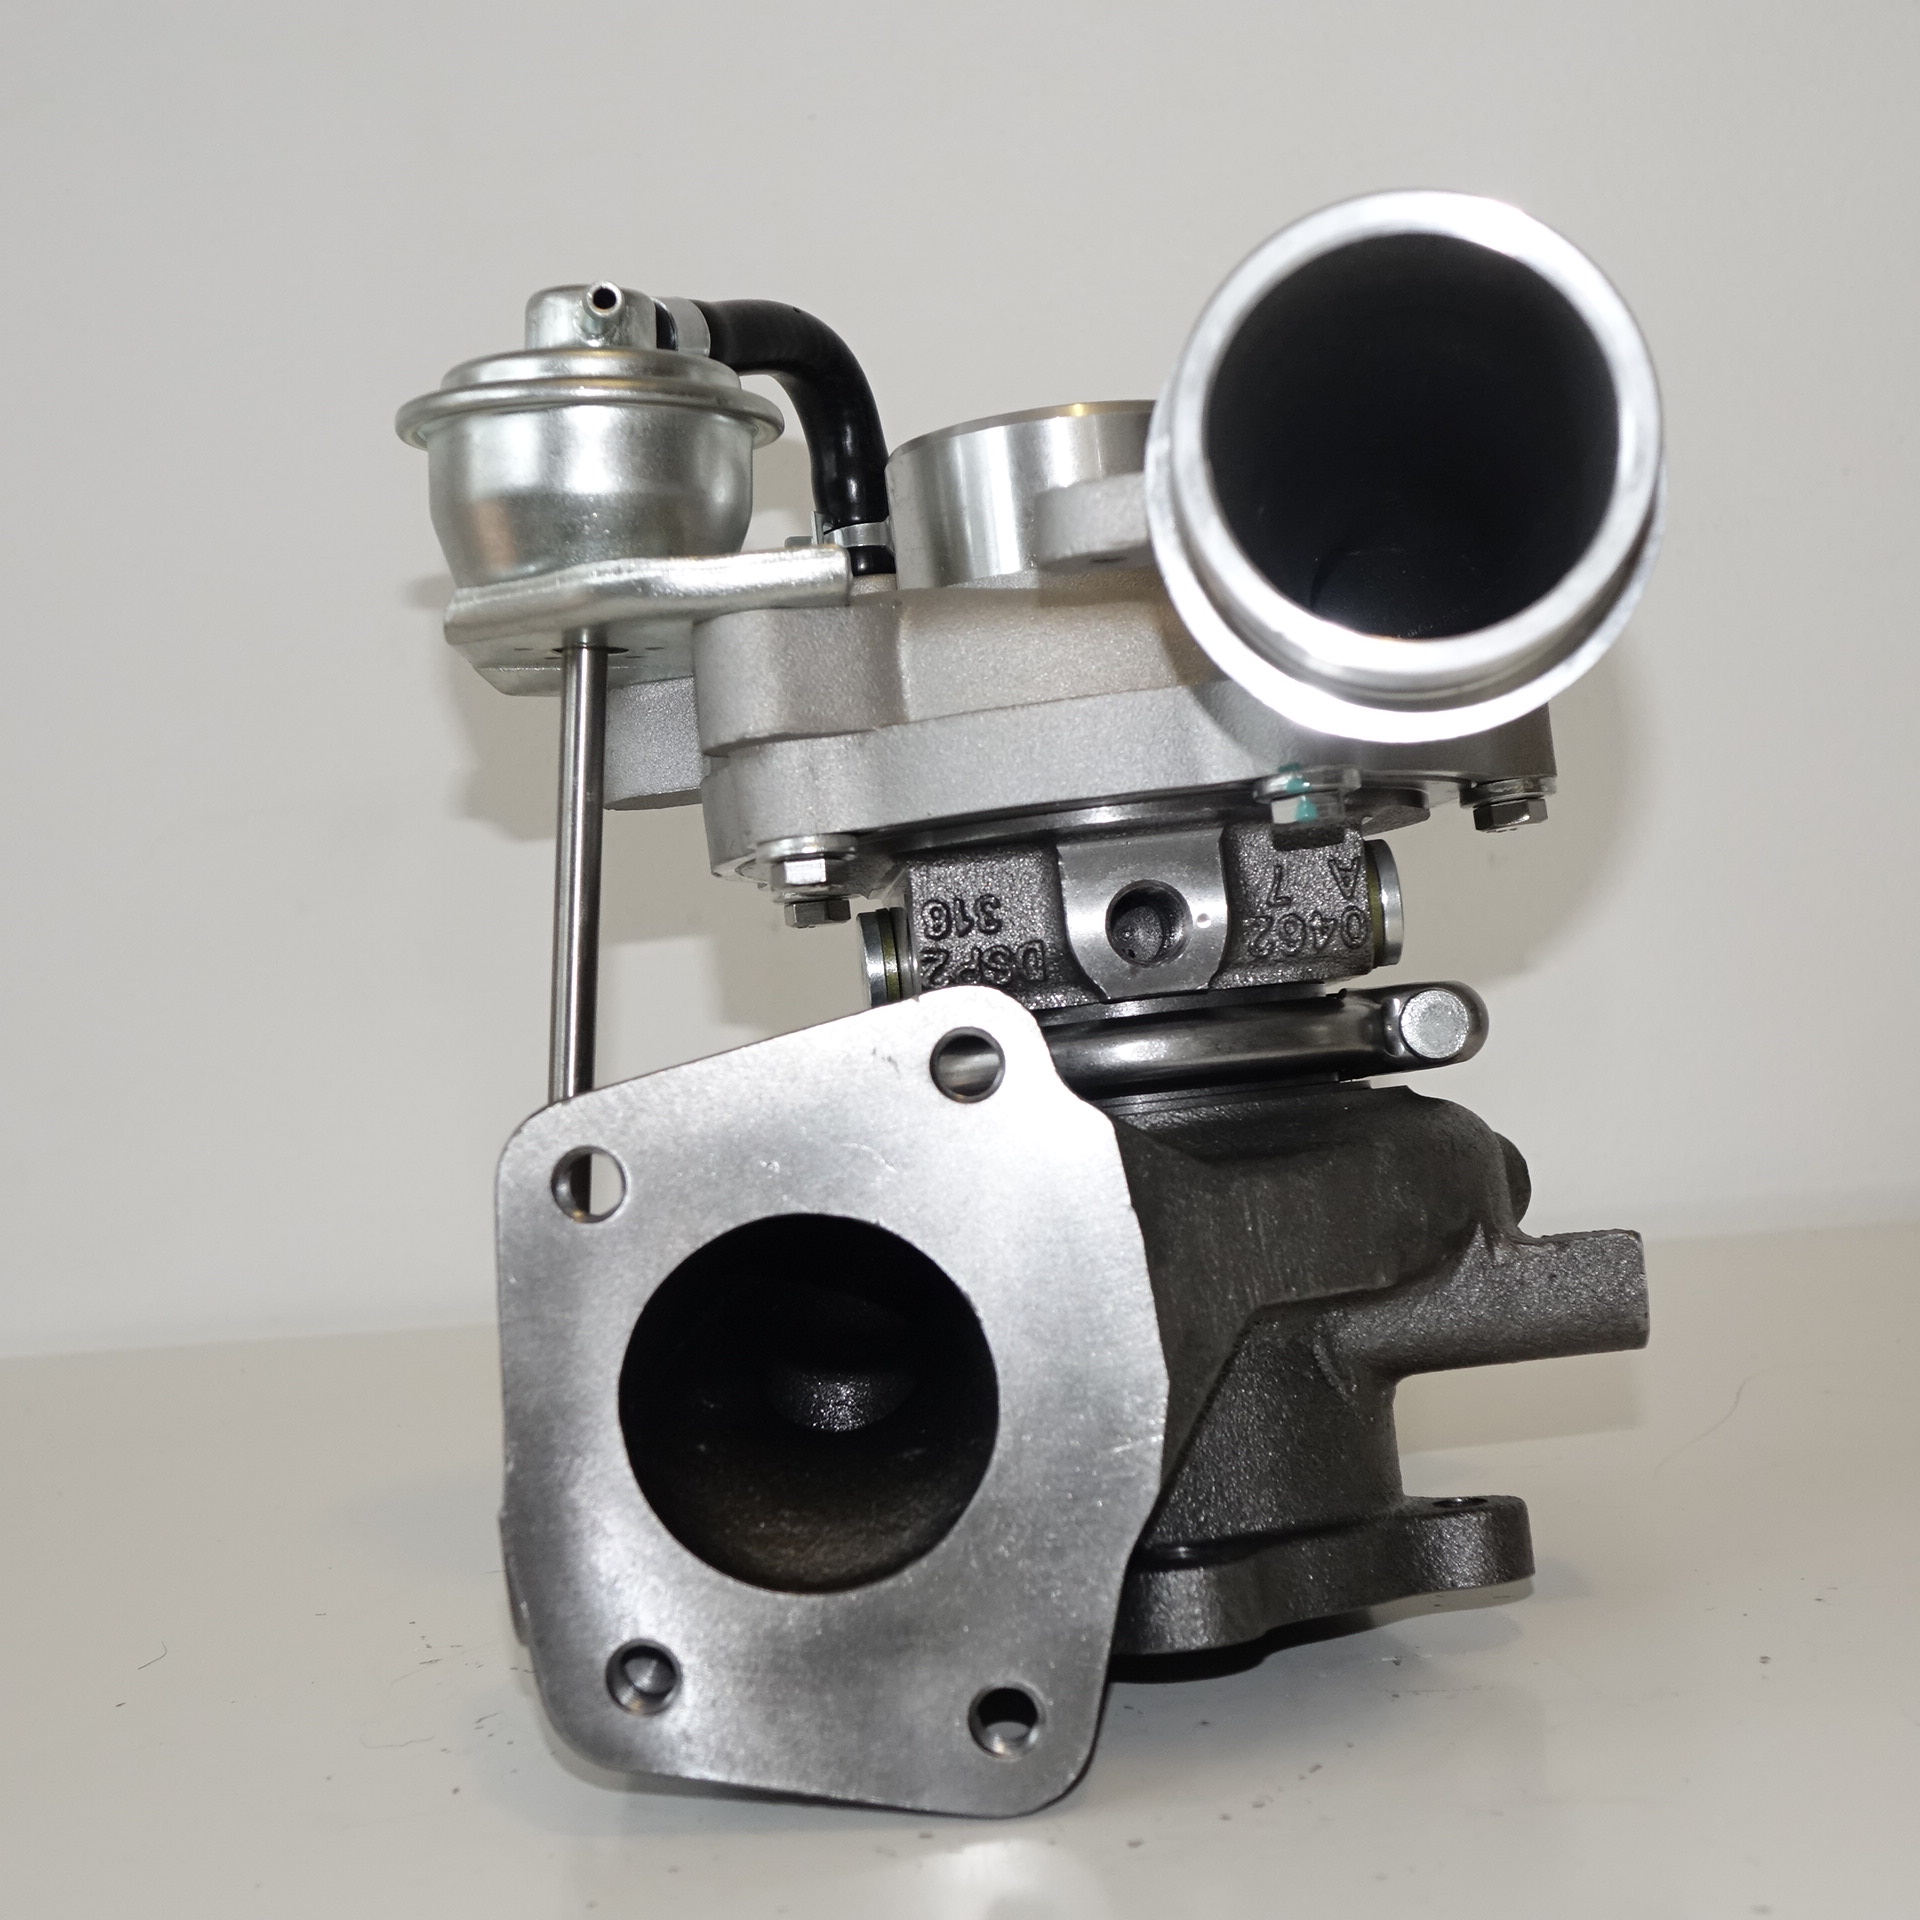 Turbine Used In Turbocharger: Turbochargers Suitable For Mazda CX7 2.3L K0422 CERAMIC